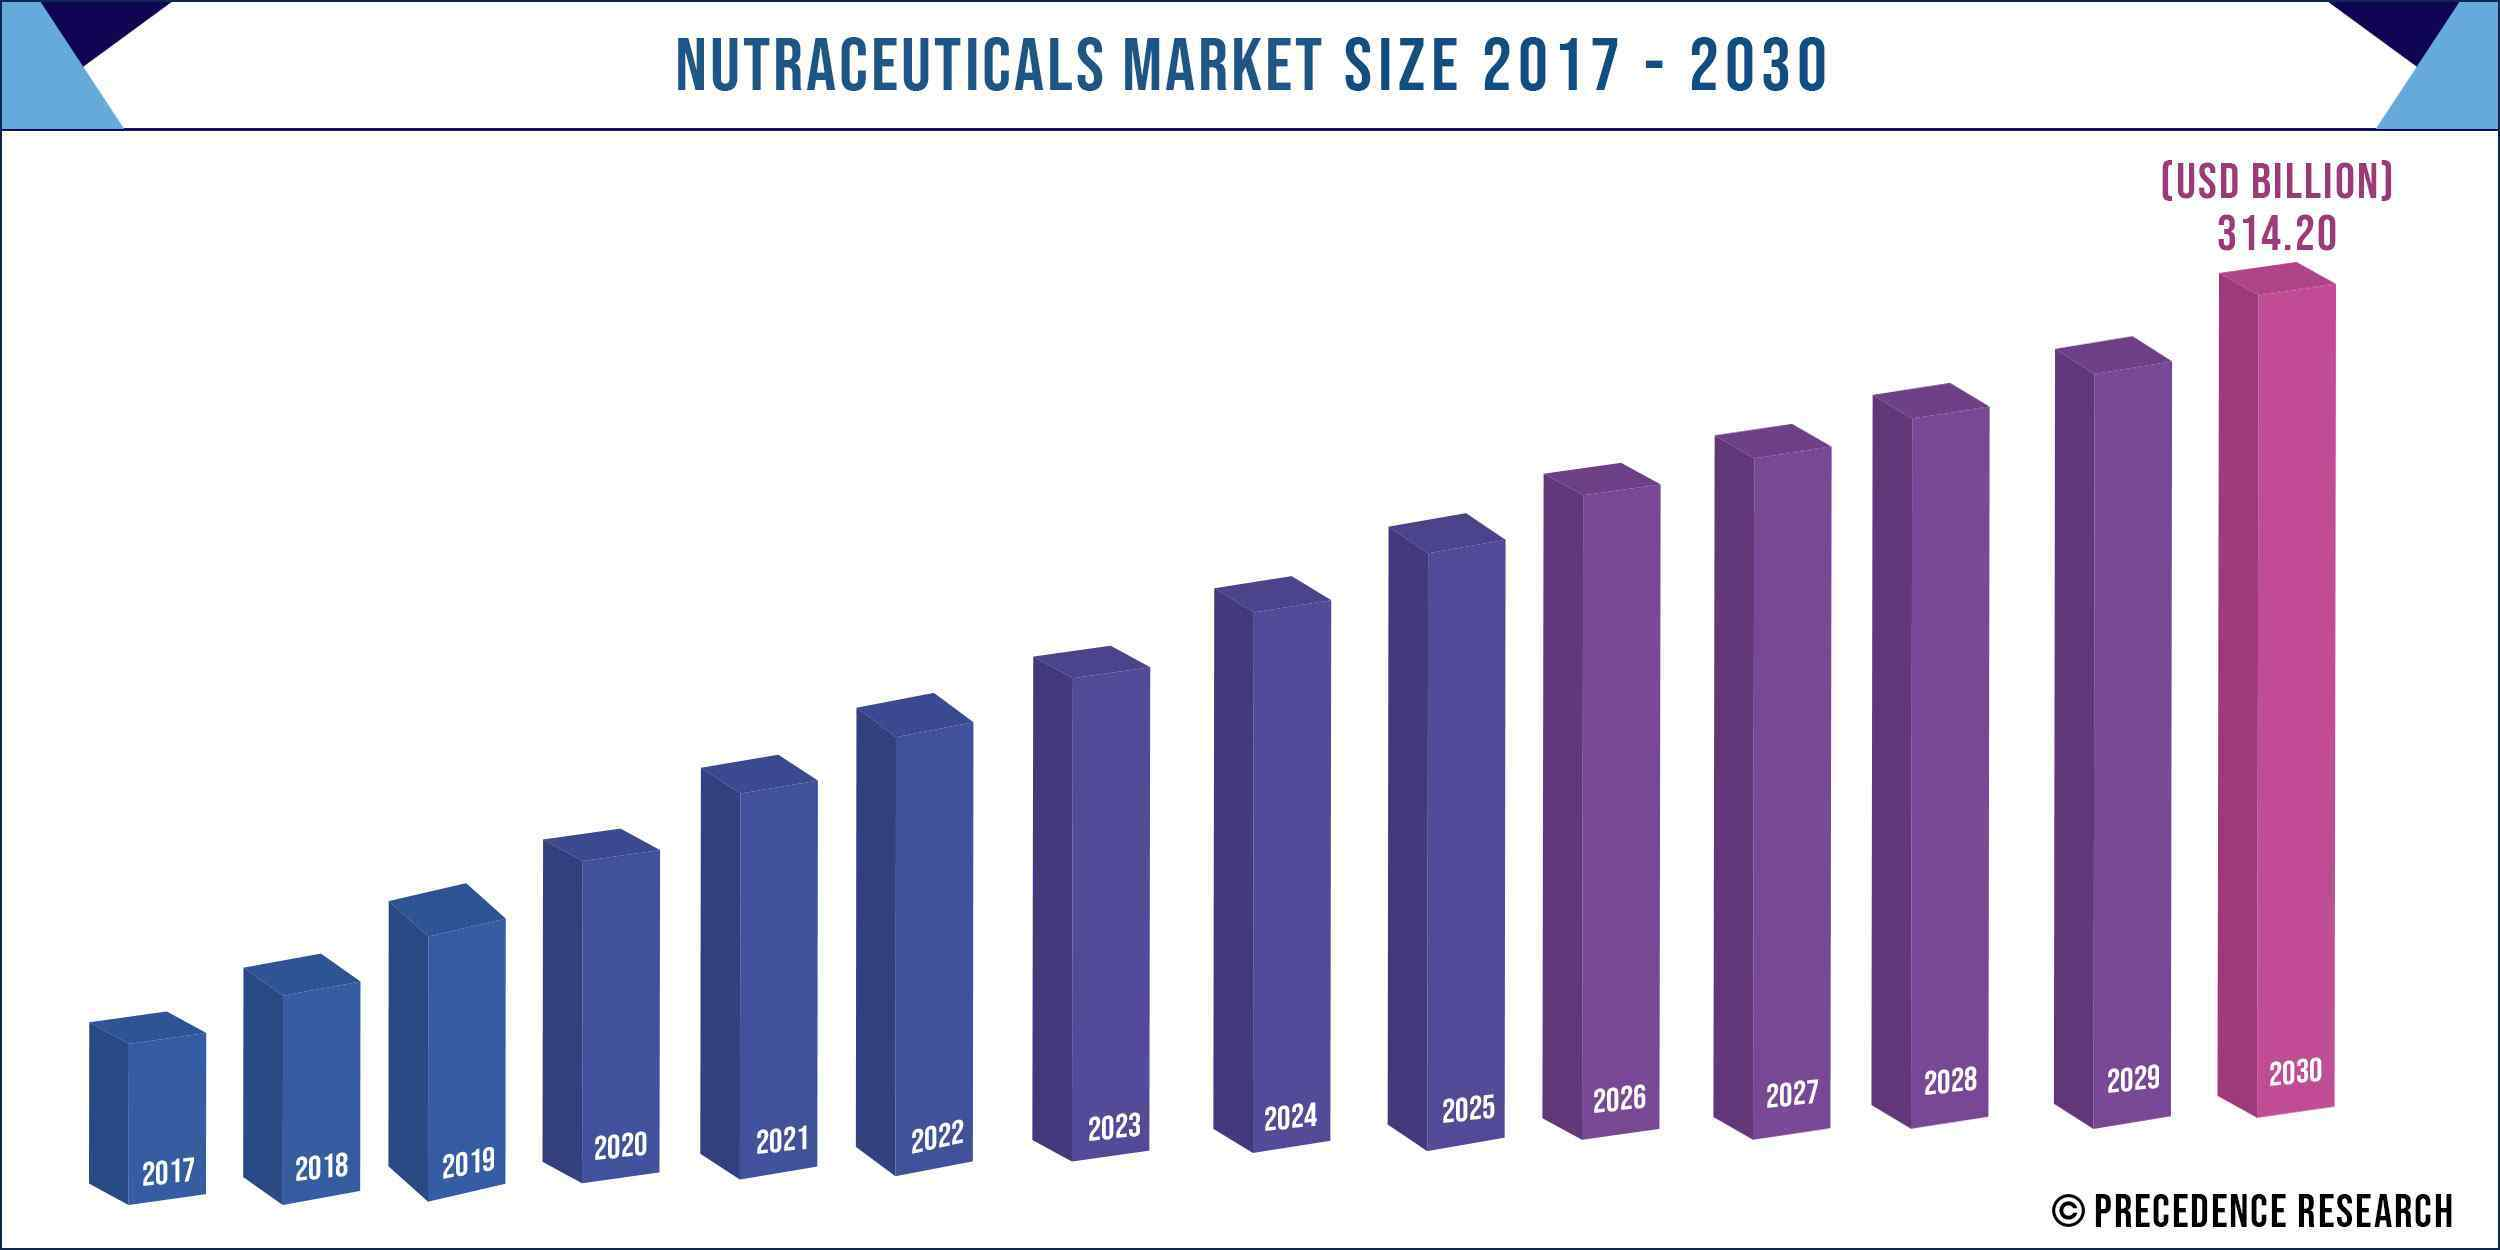 Nutraceuticals Market Size 2017 to 2030